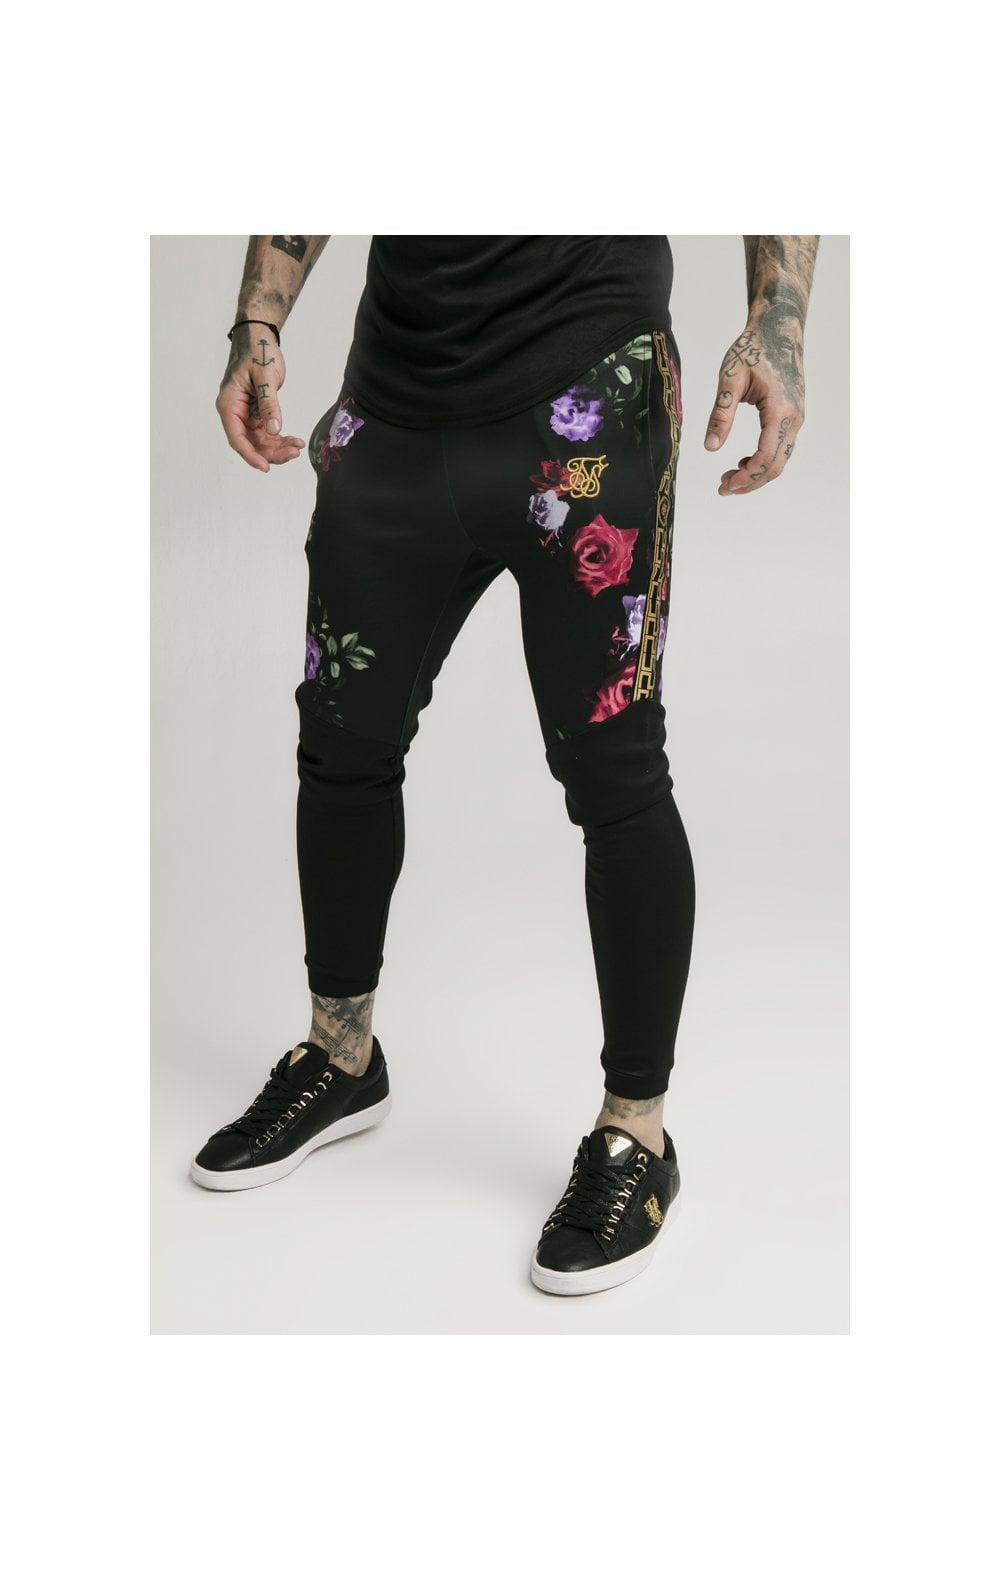 Load image into Gallery viewer, SikSilk Cuffed Panel Athlete Track Pants - Black & Oil Paint